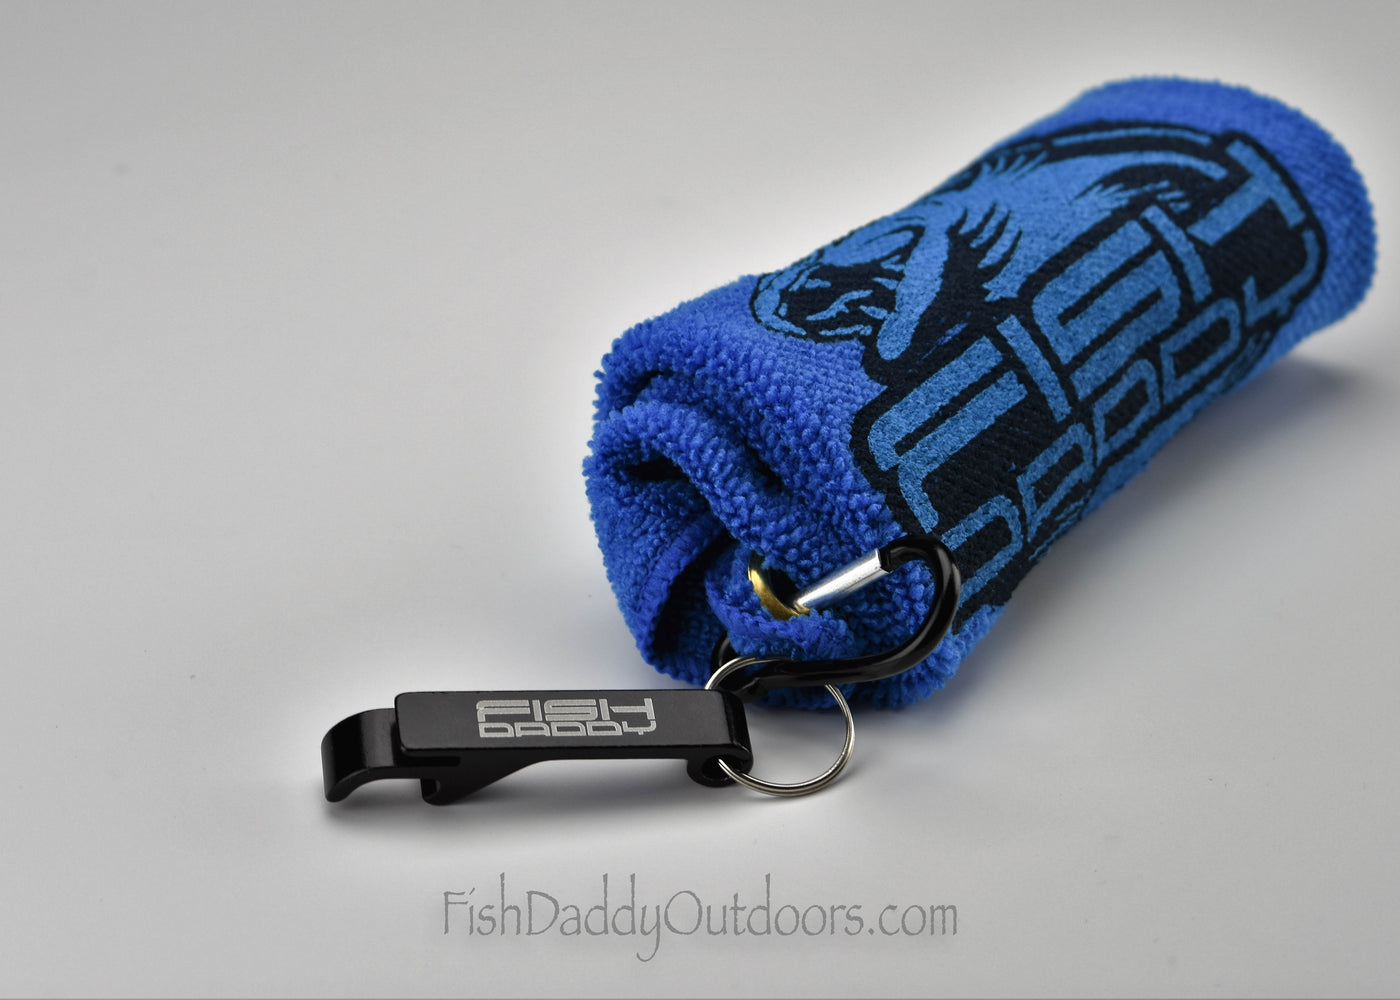 Bait Towel and Bottle Openers